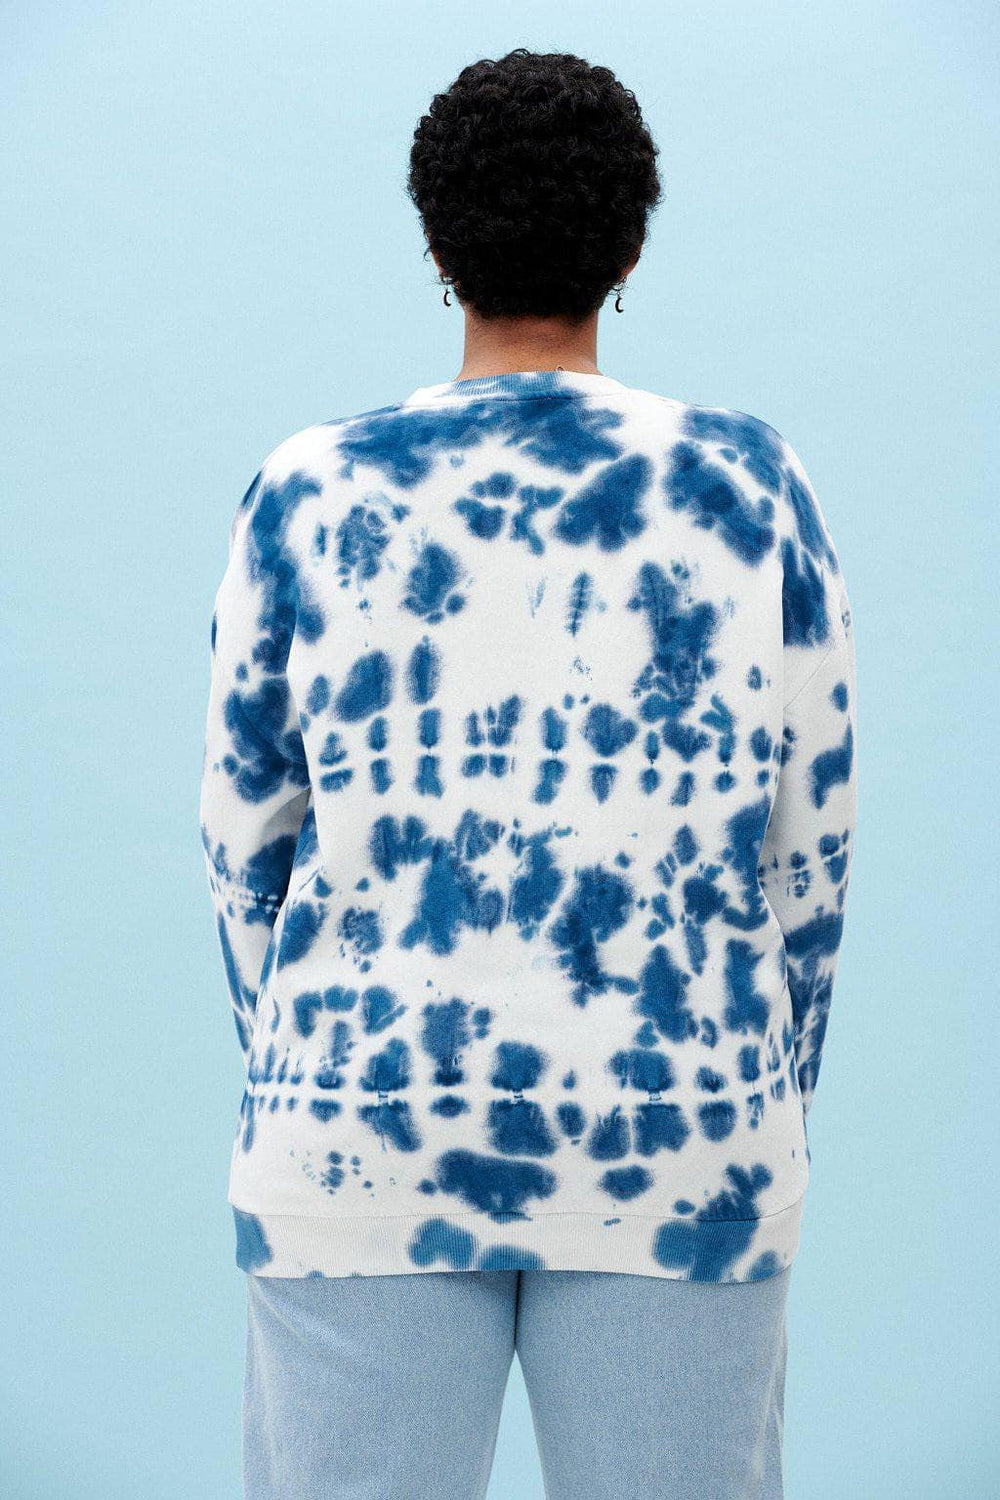 Lucy & Yak Sweatshirts Organic Cotton Sonny Sweater in Indigo Tie Dye